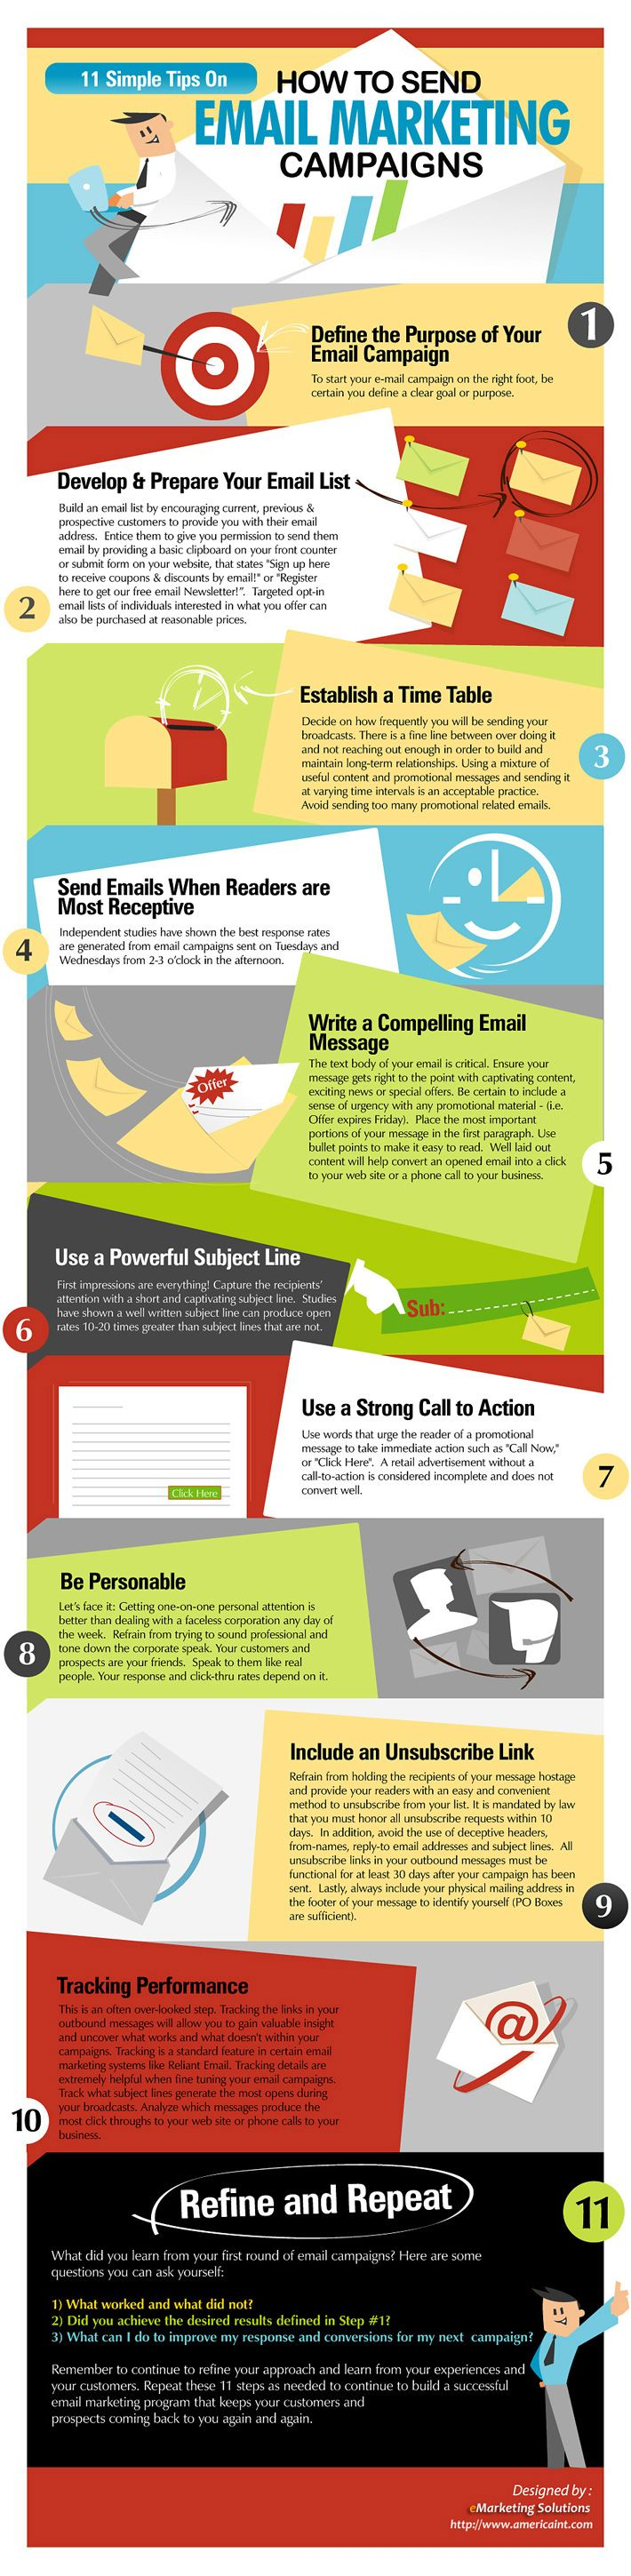 Best 20+ Email marketing campaign ideas on Pinterest